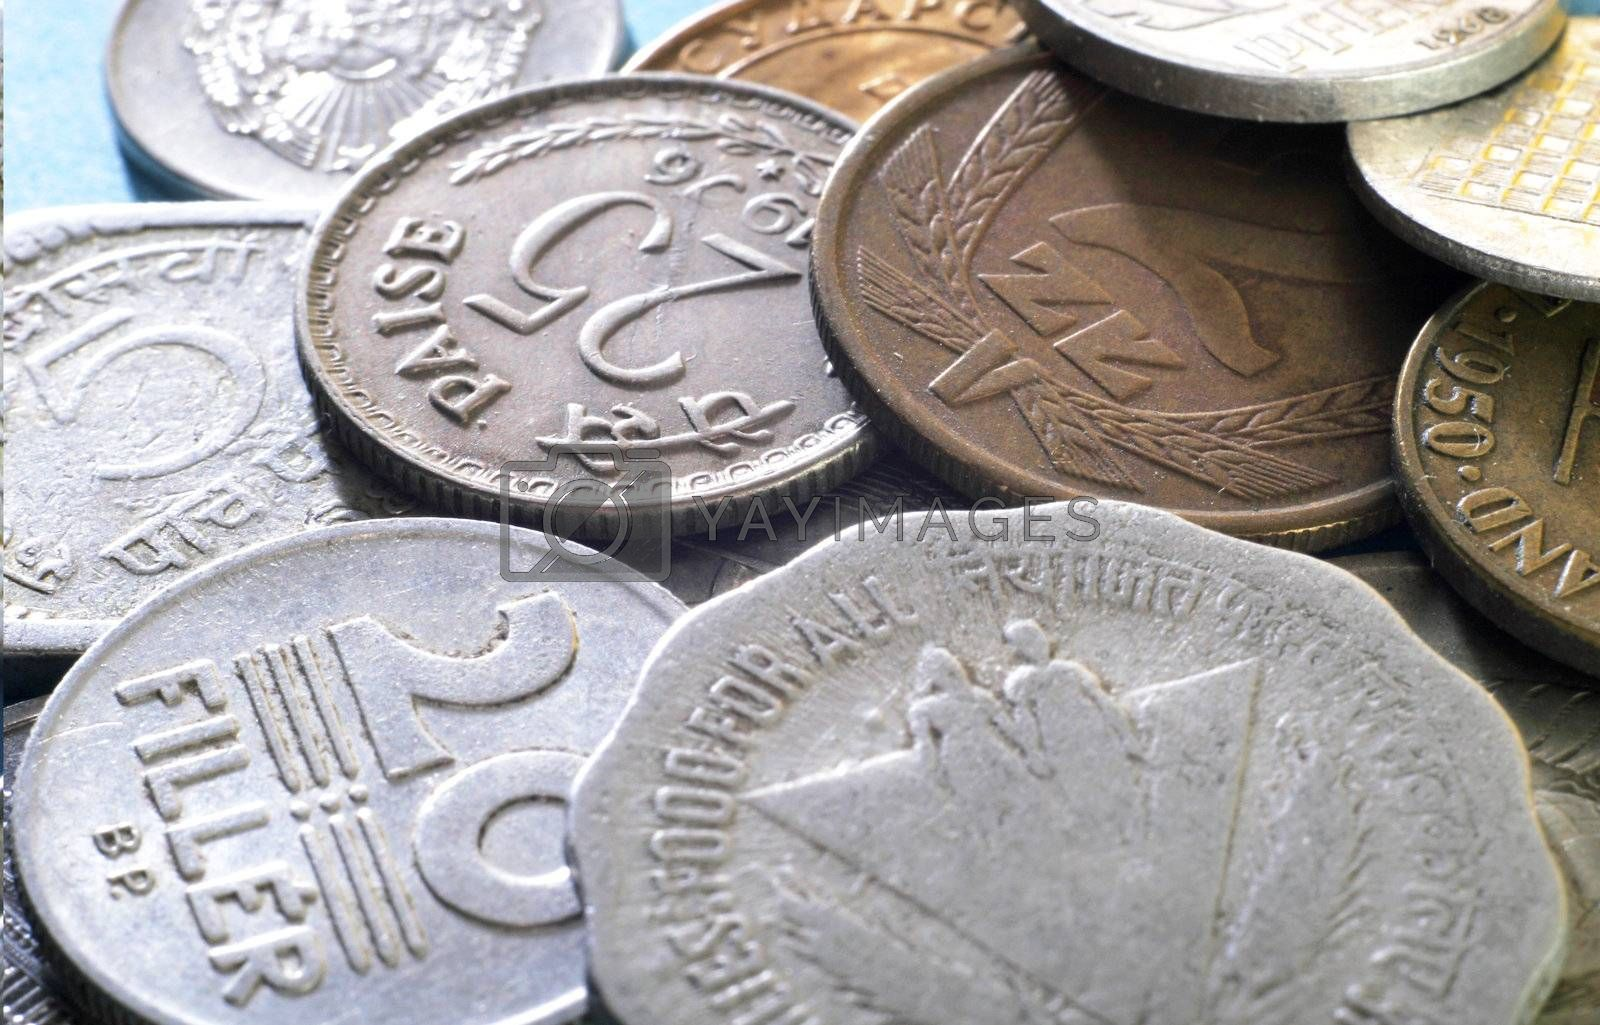 Modern international coins on the table